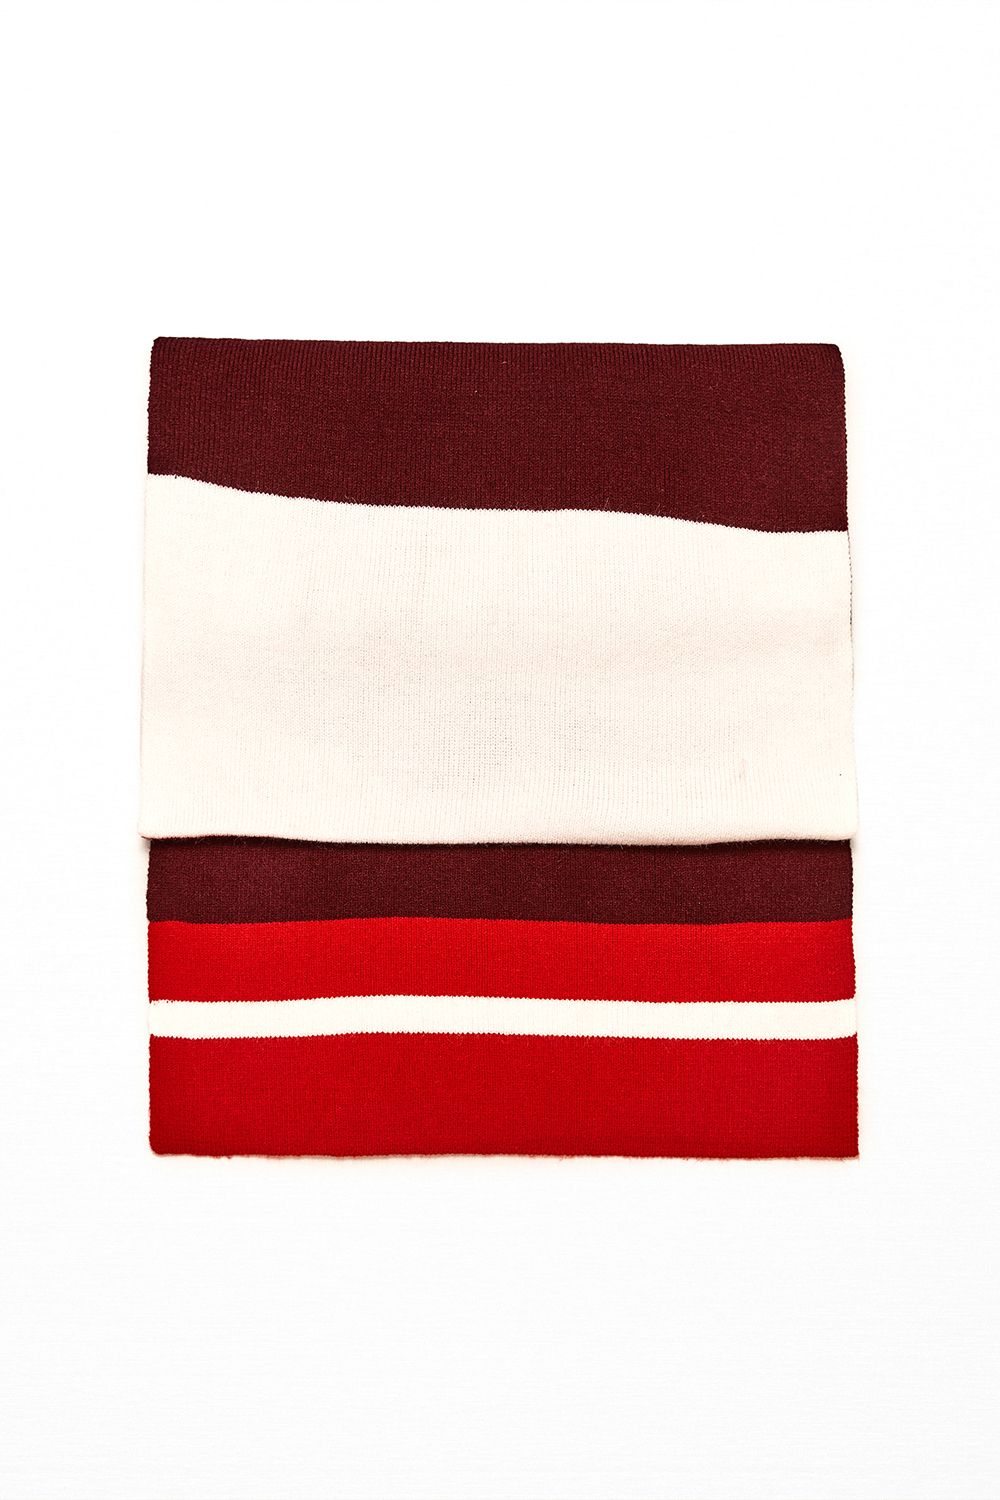 "<p>""Tommy, Tommy, kinda.""  </p>  <p>$26, <a href=""http://www.zara.com/us/en/woman/accessories/scarves/college-style-scarf-c271013p3819567.html"" target=""_blank"" data-tracking-id=""recirc-text-link"">zara.com</a>.</p>"